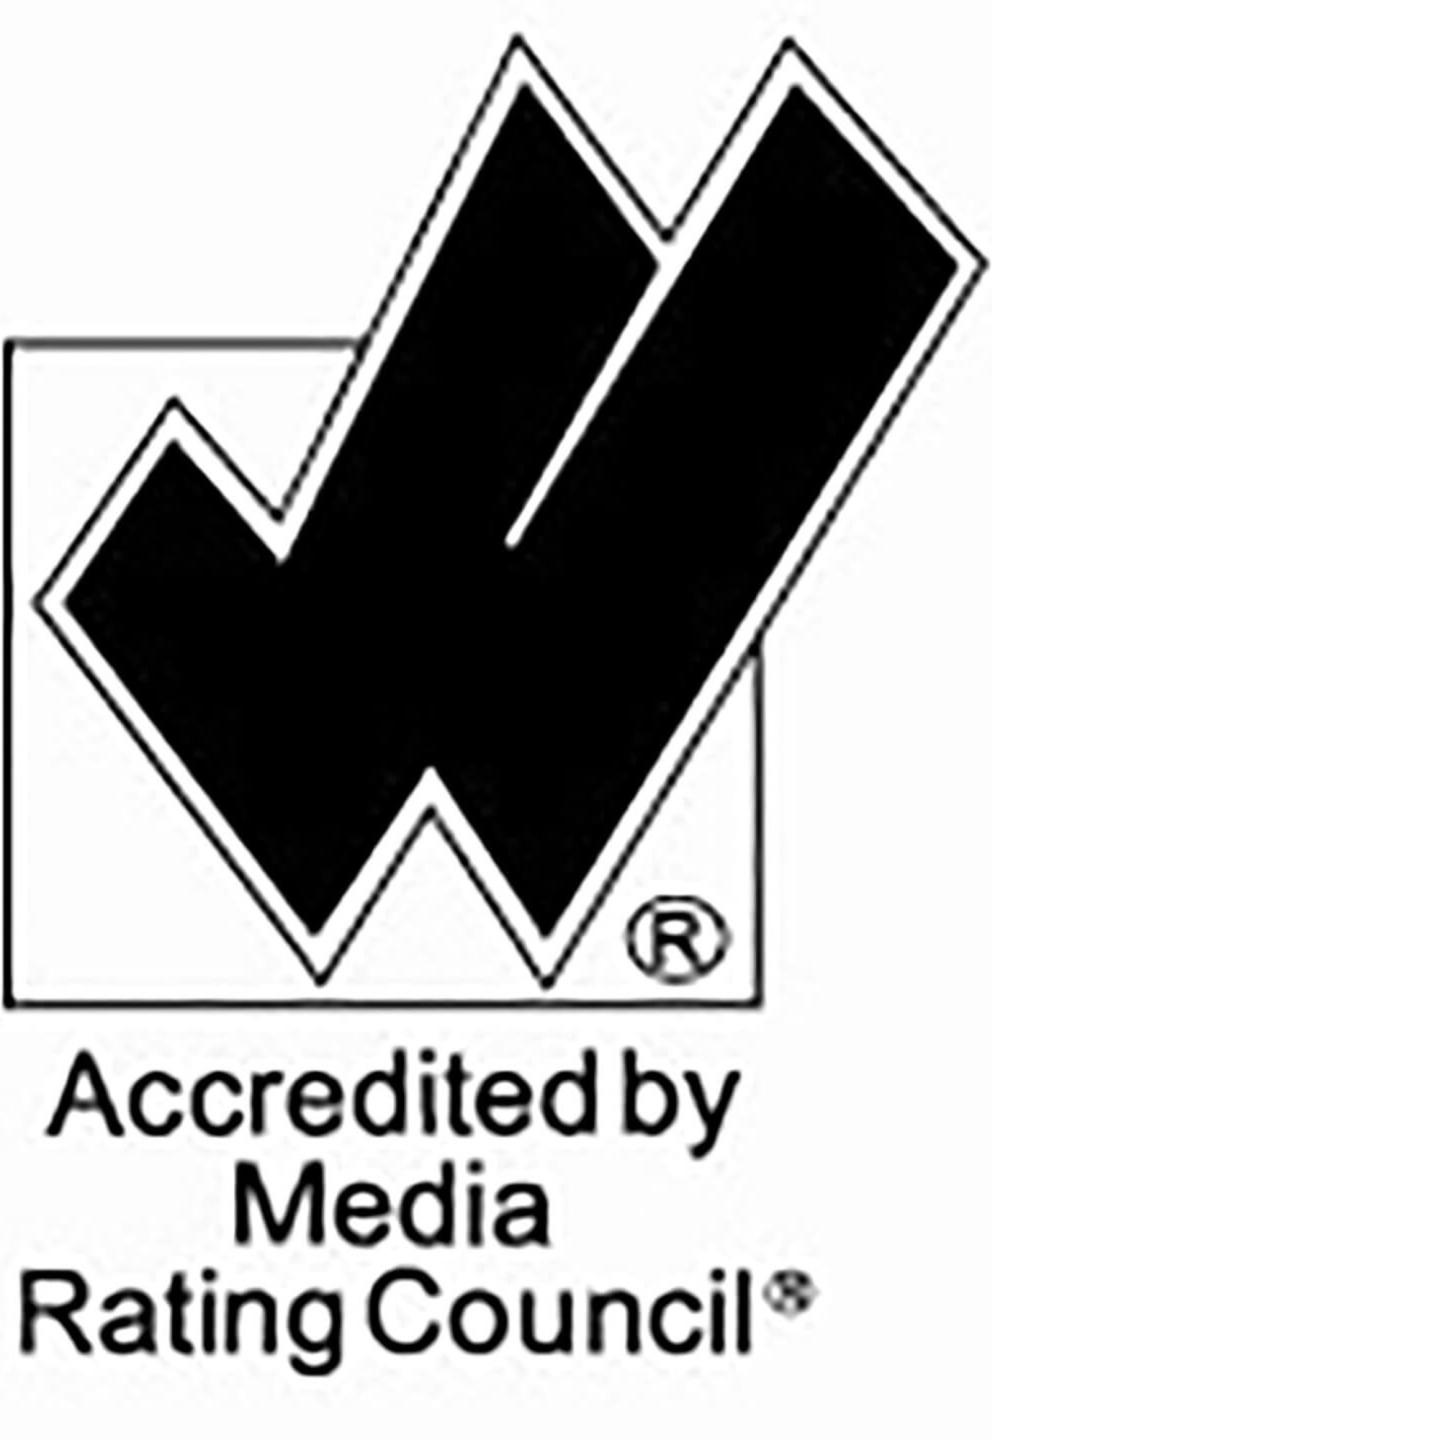 an image of the MRC logo